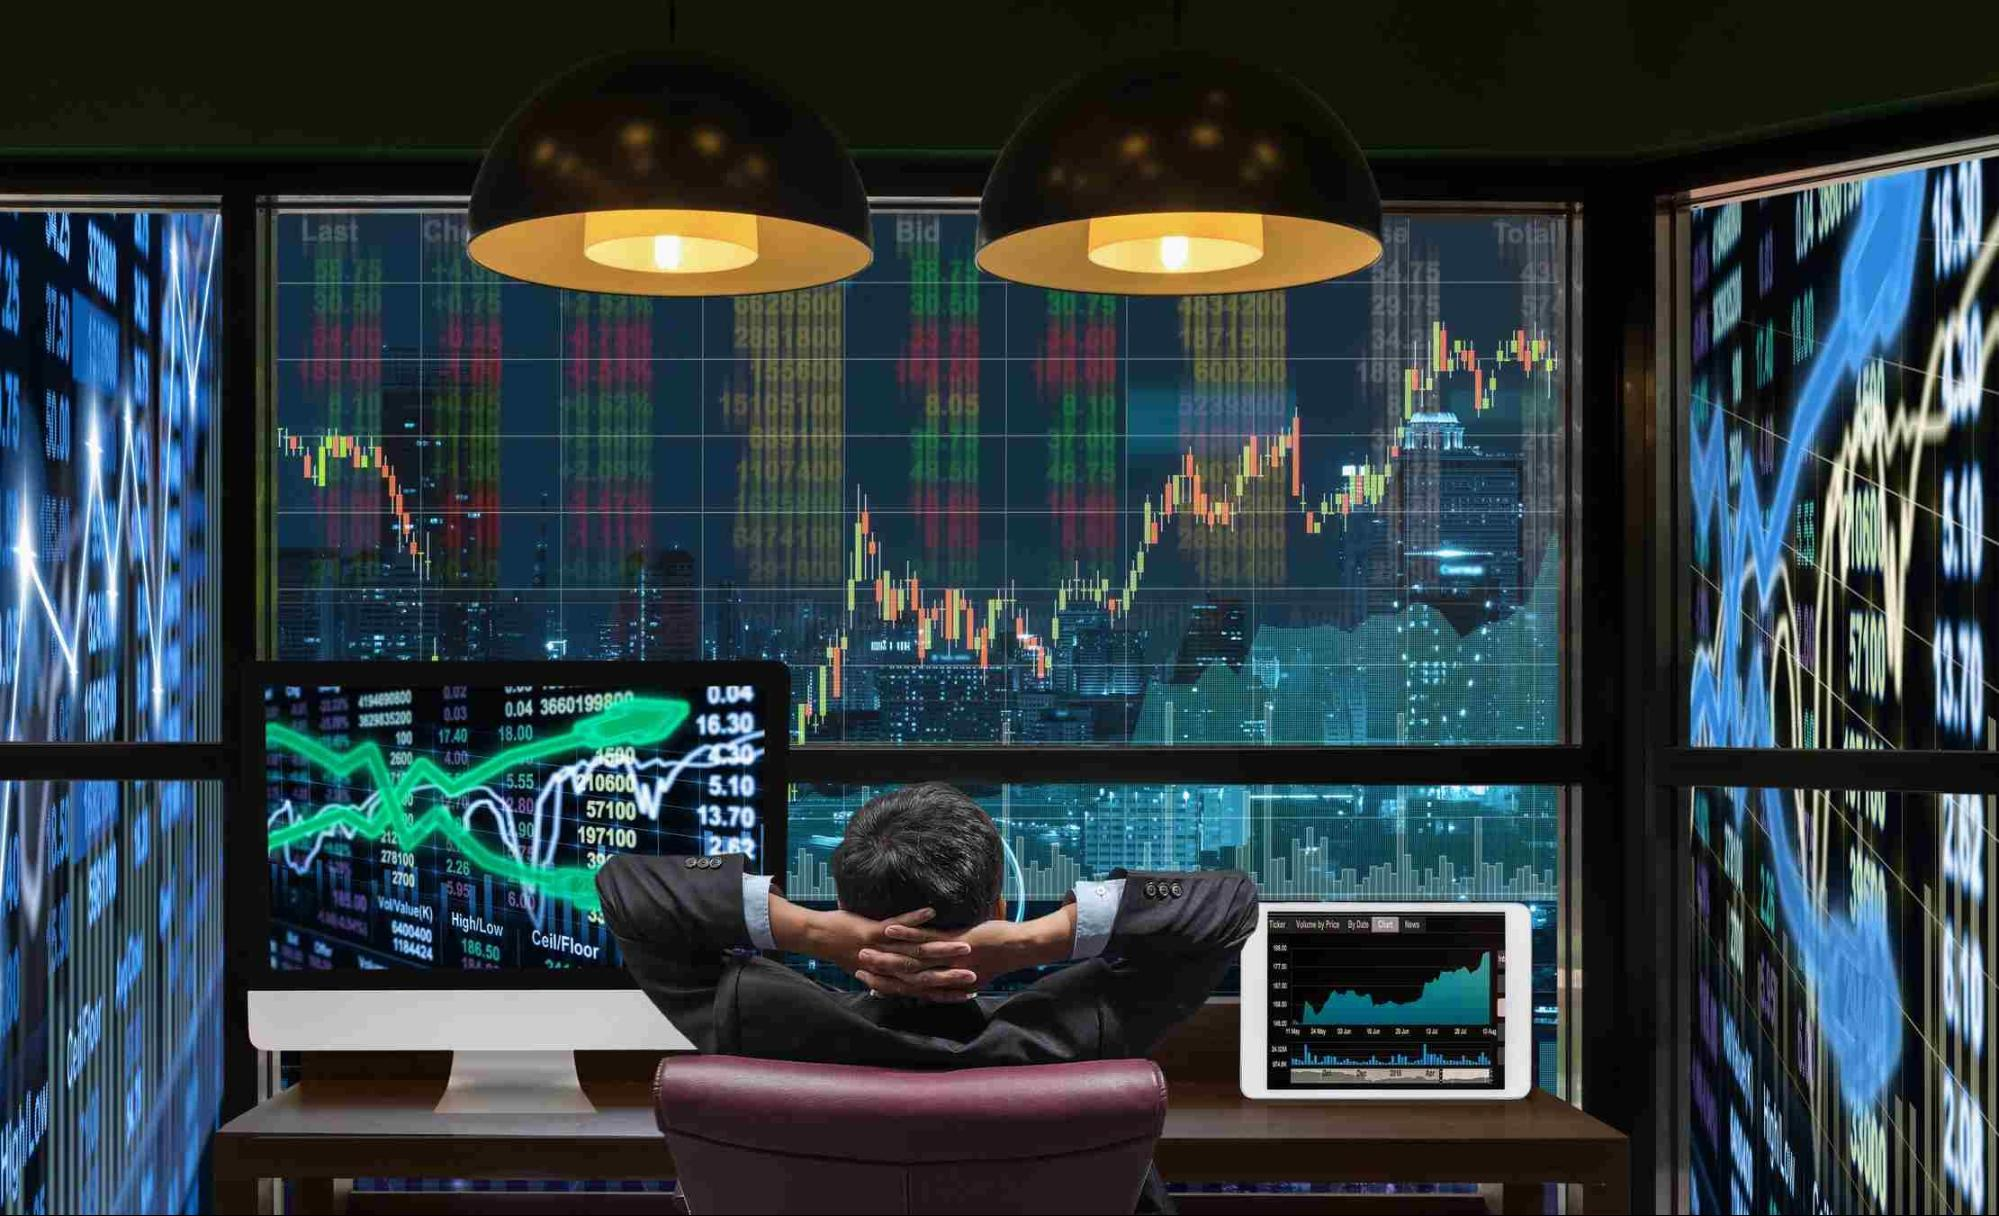 Automated Day Trading Software. Avoid the sales pitch